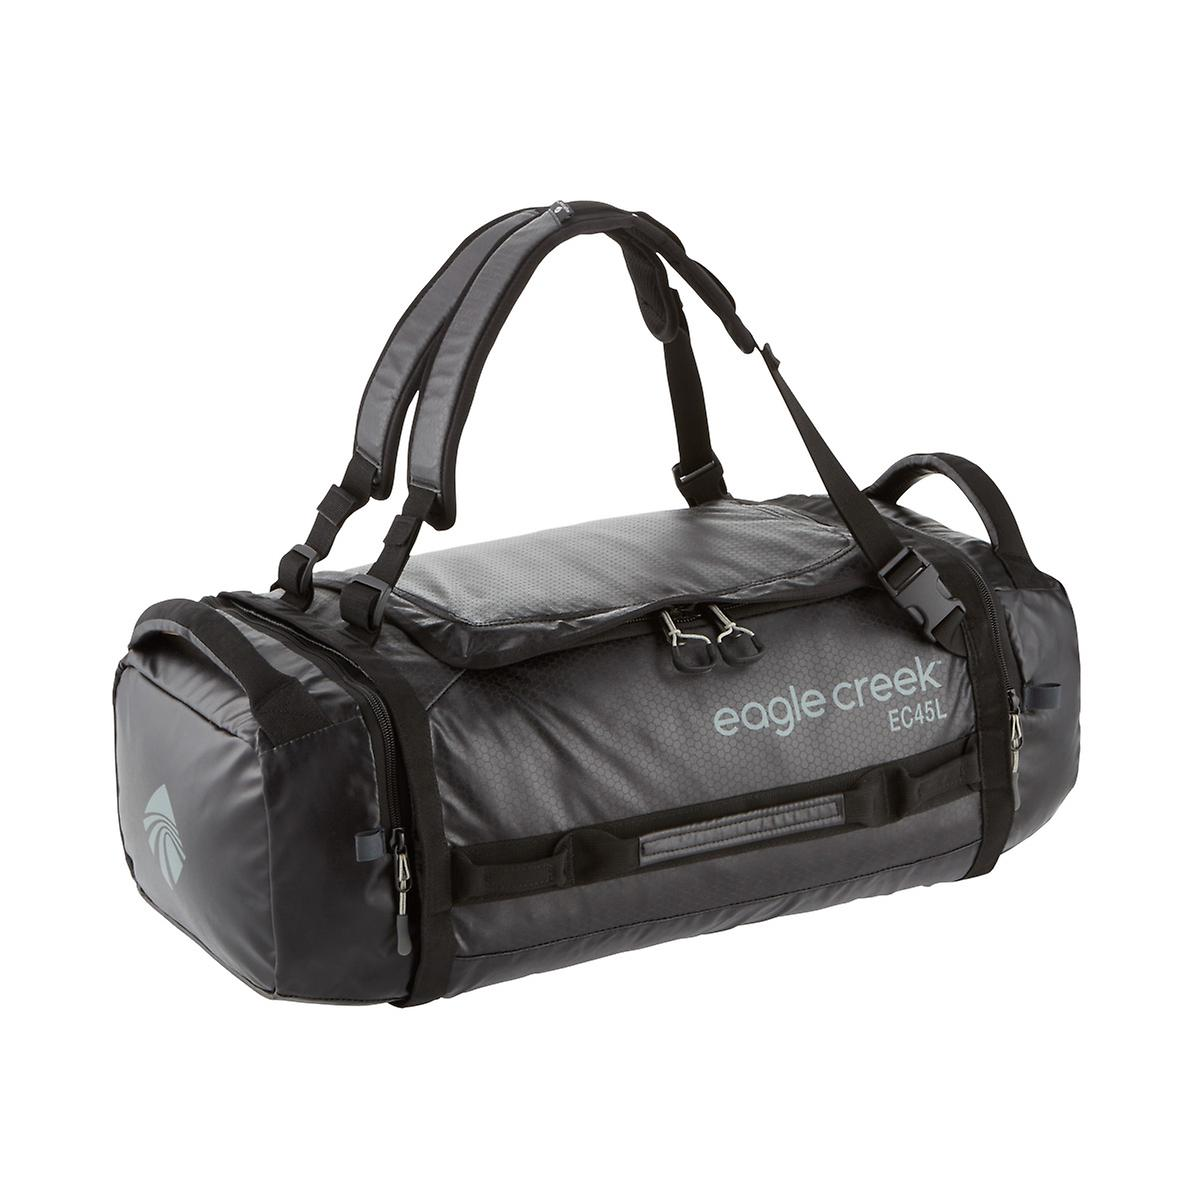 "Eagle Creek 22"" Black Cargo Hauler Duffel"